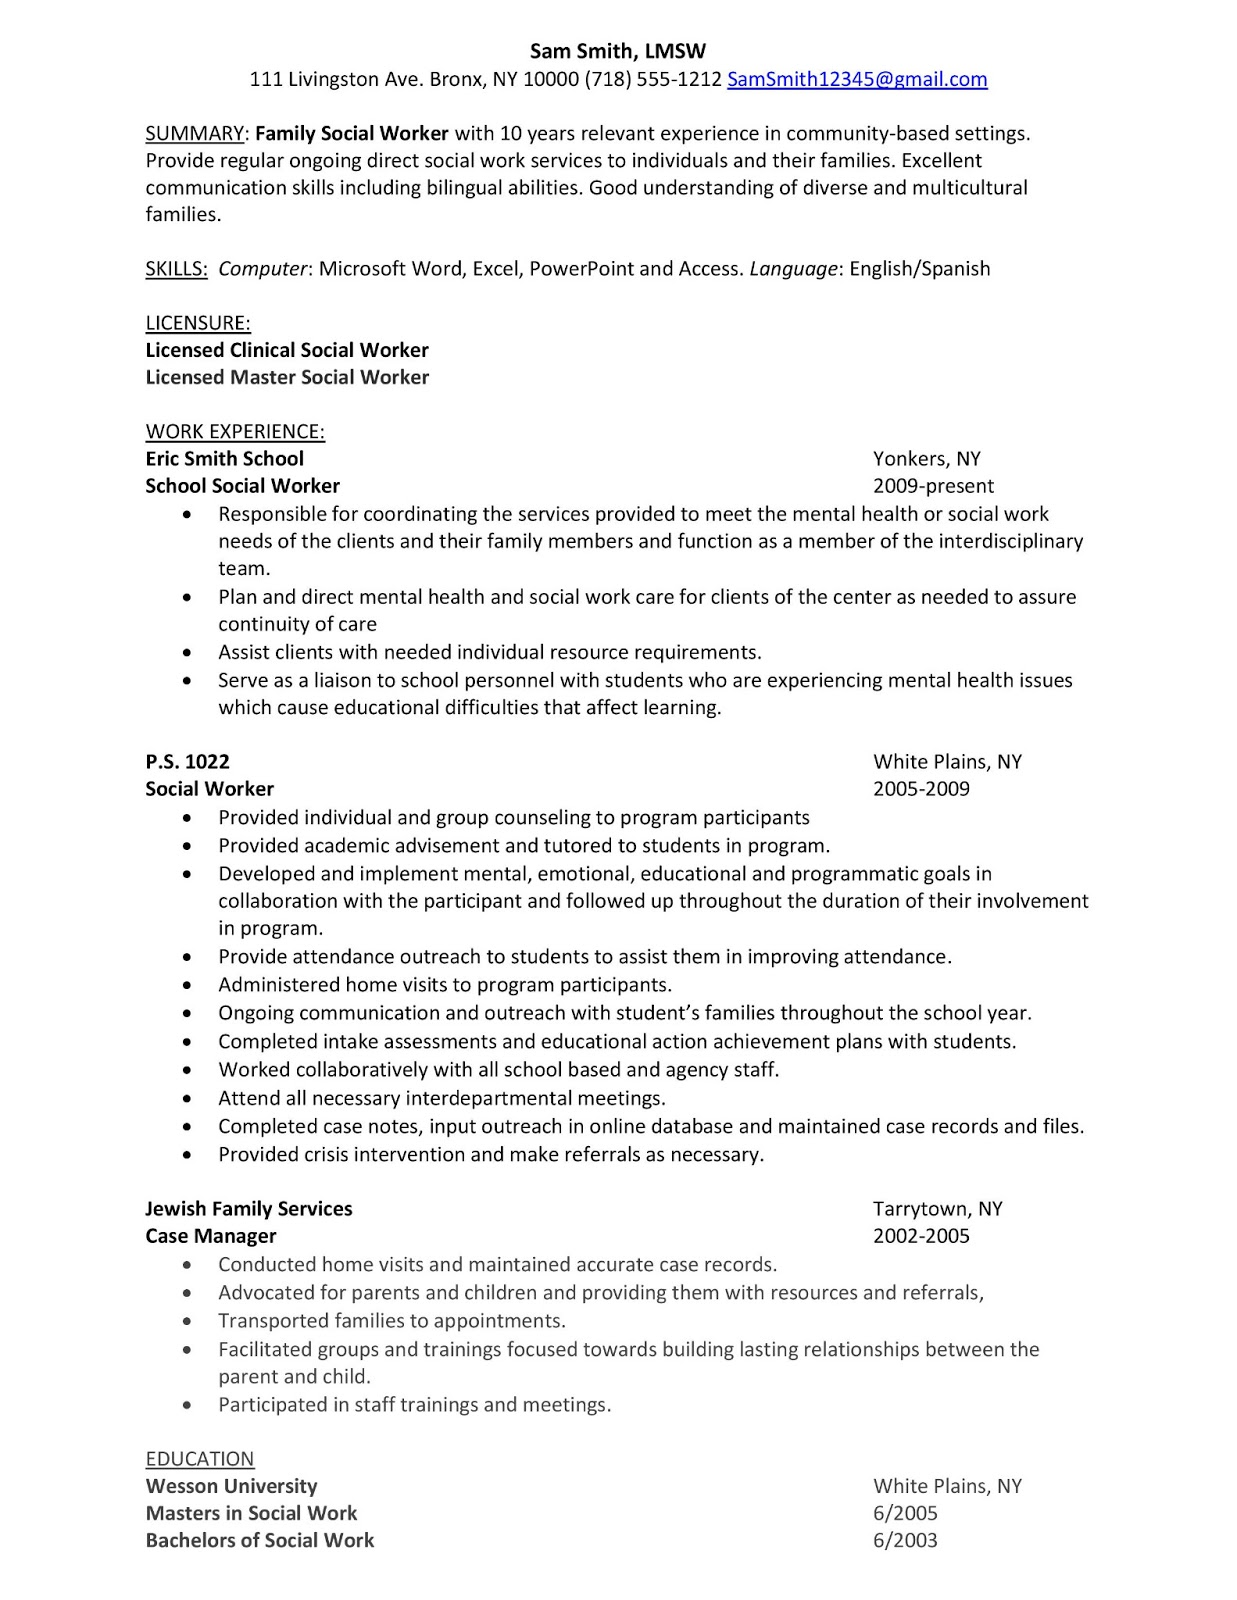 coursework in resume sample